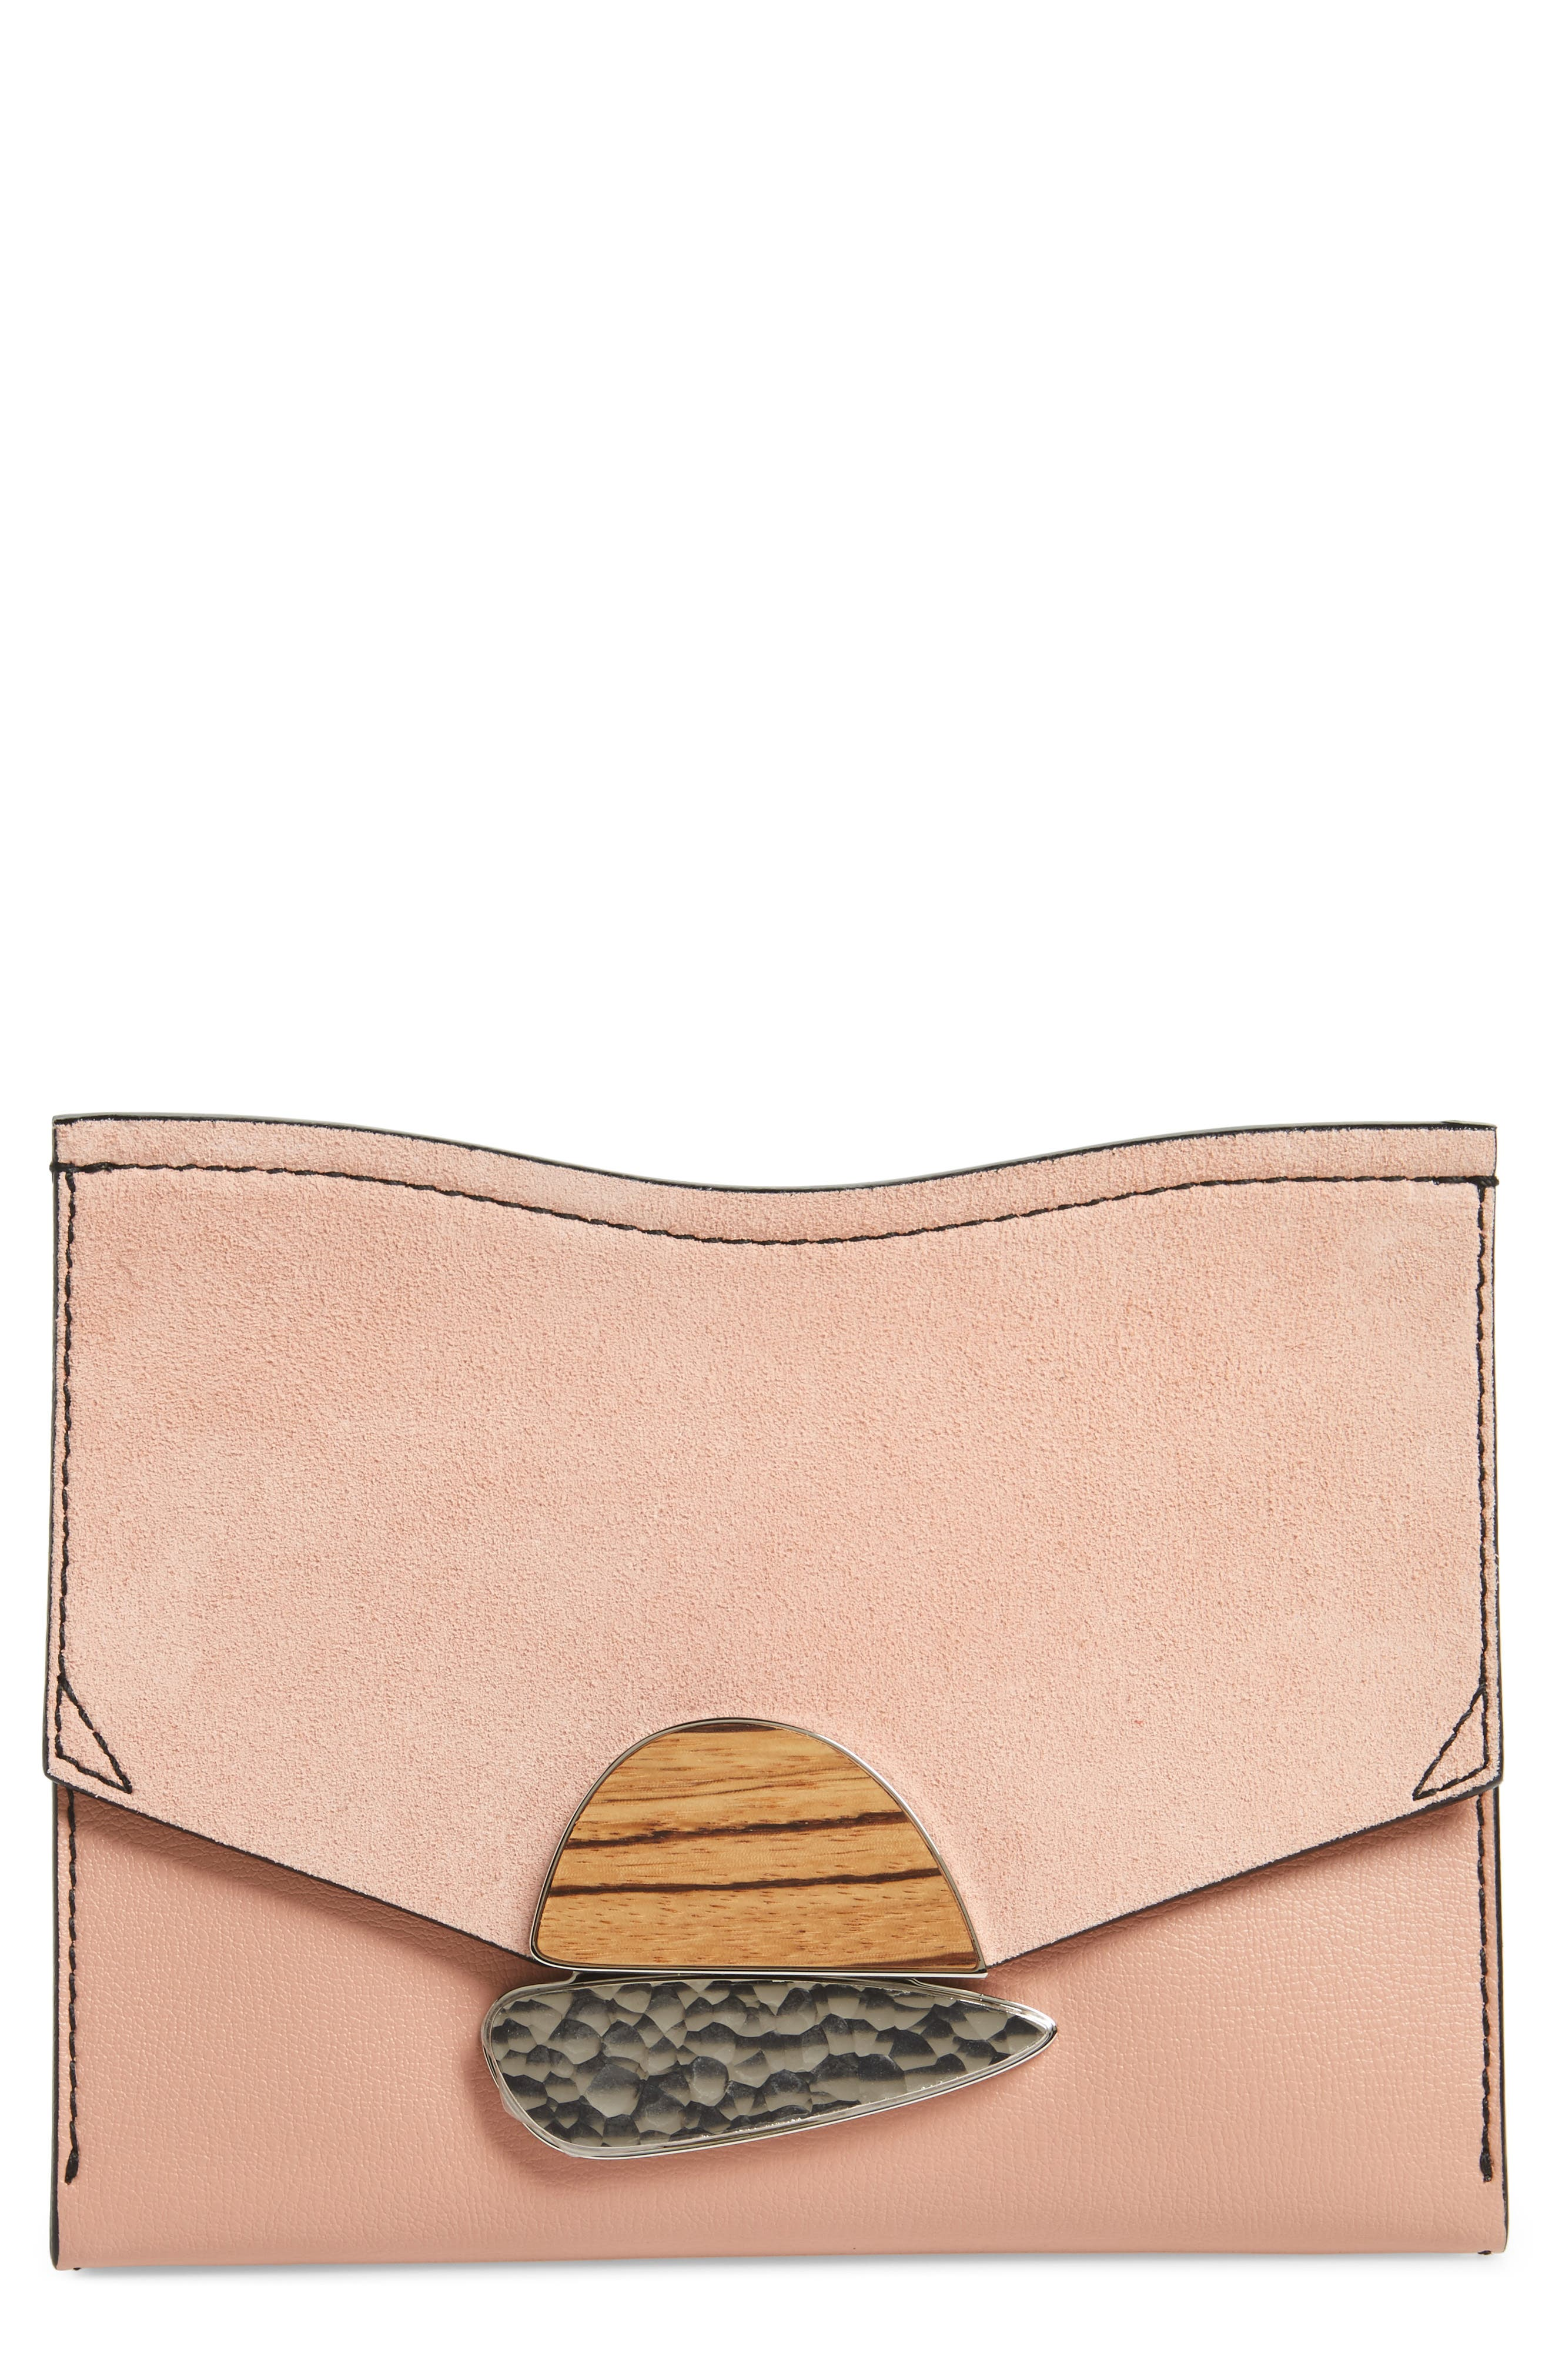 Small Calfskin Leather Clutch,                         Main,                         color, Deep Blush